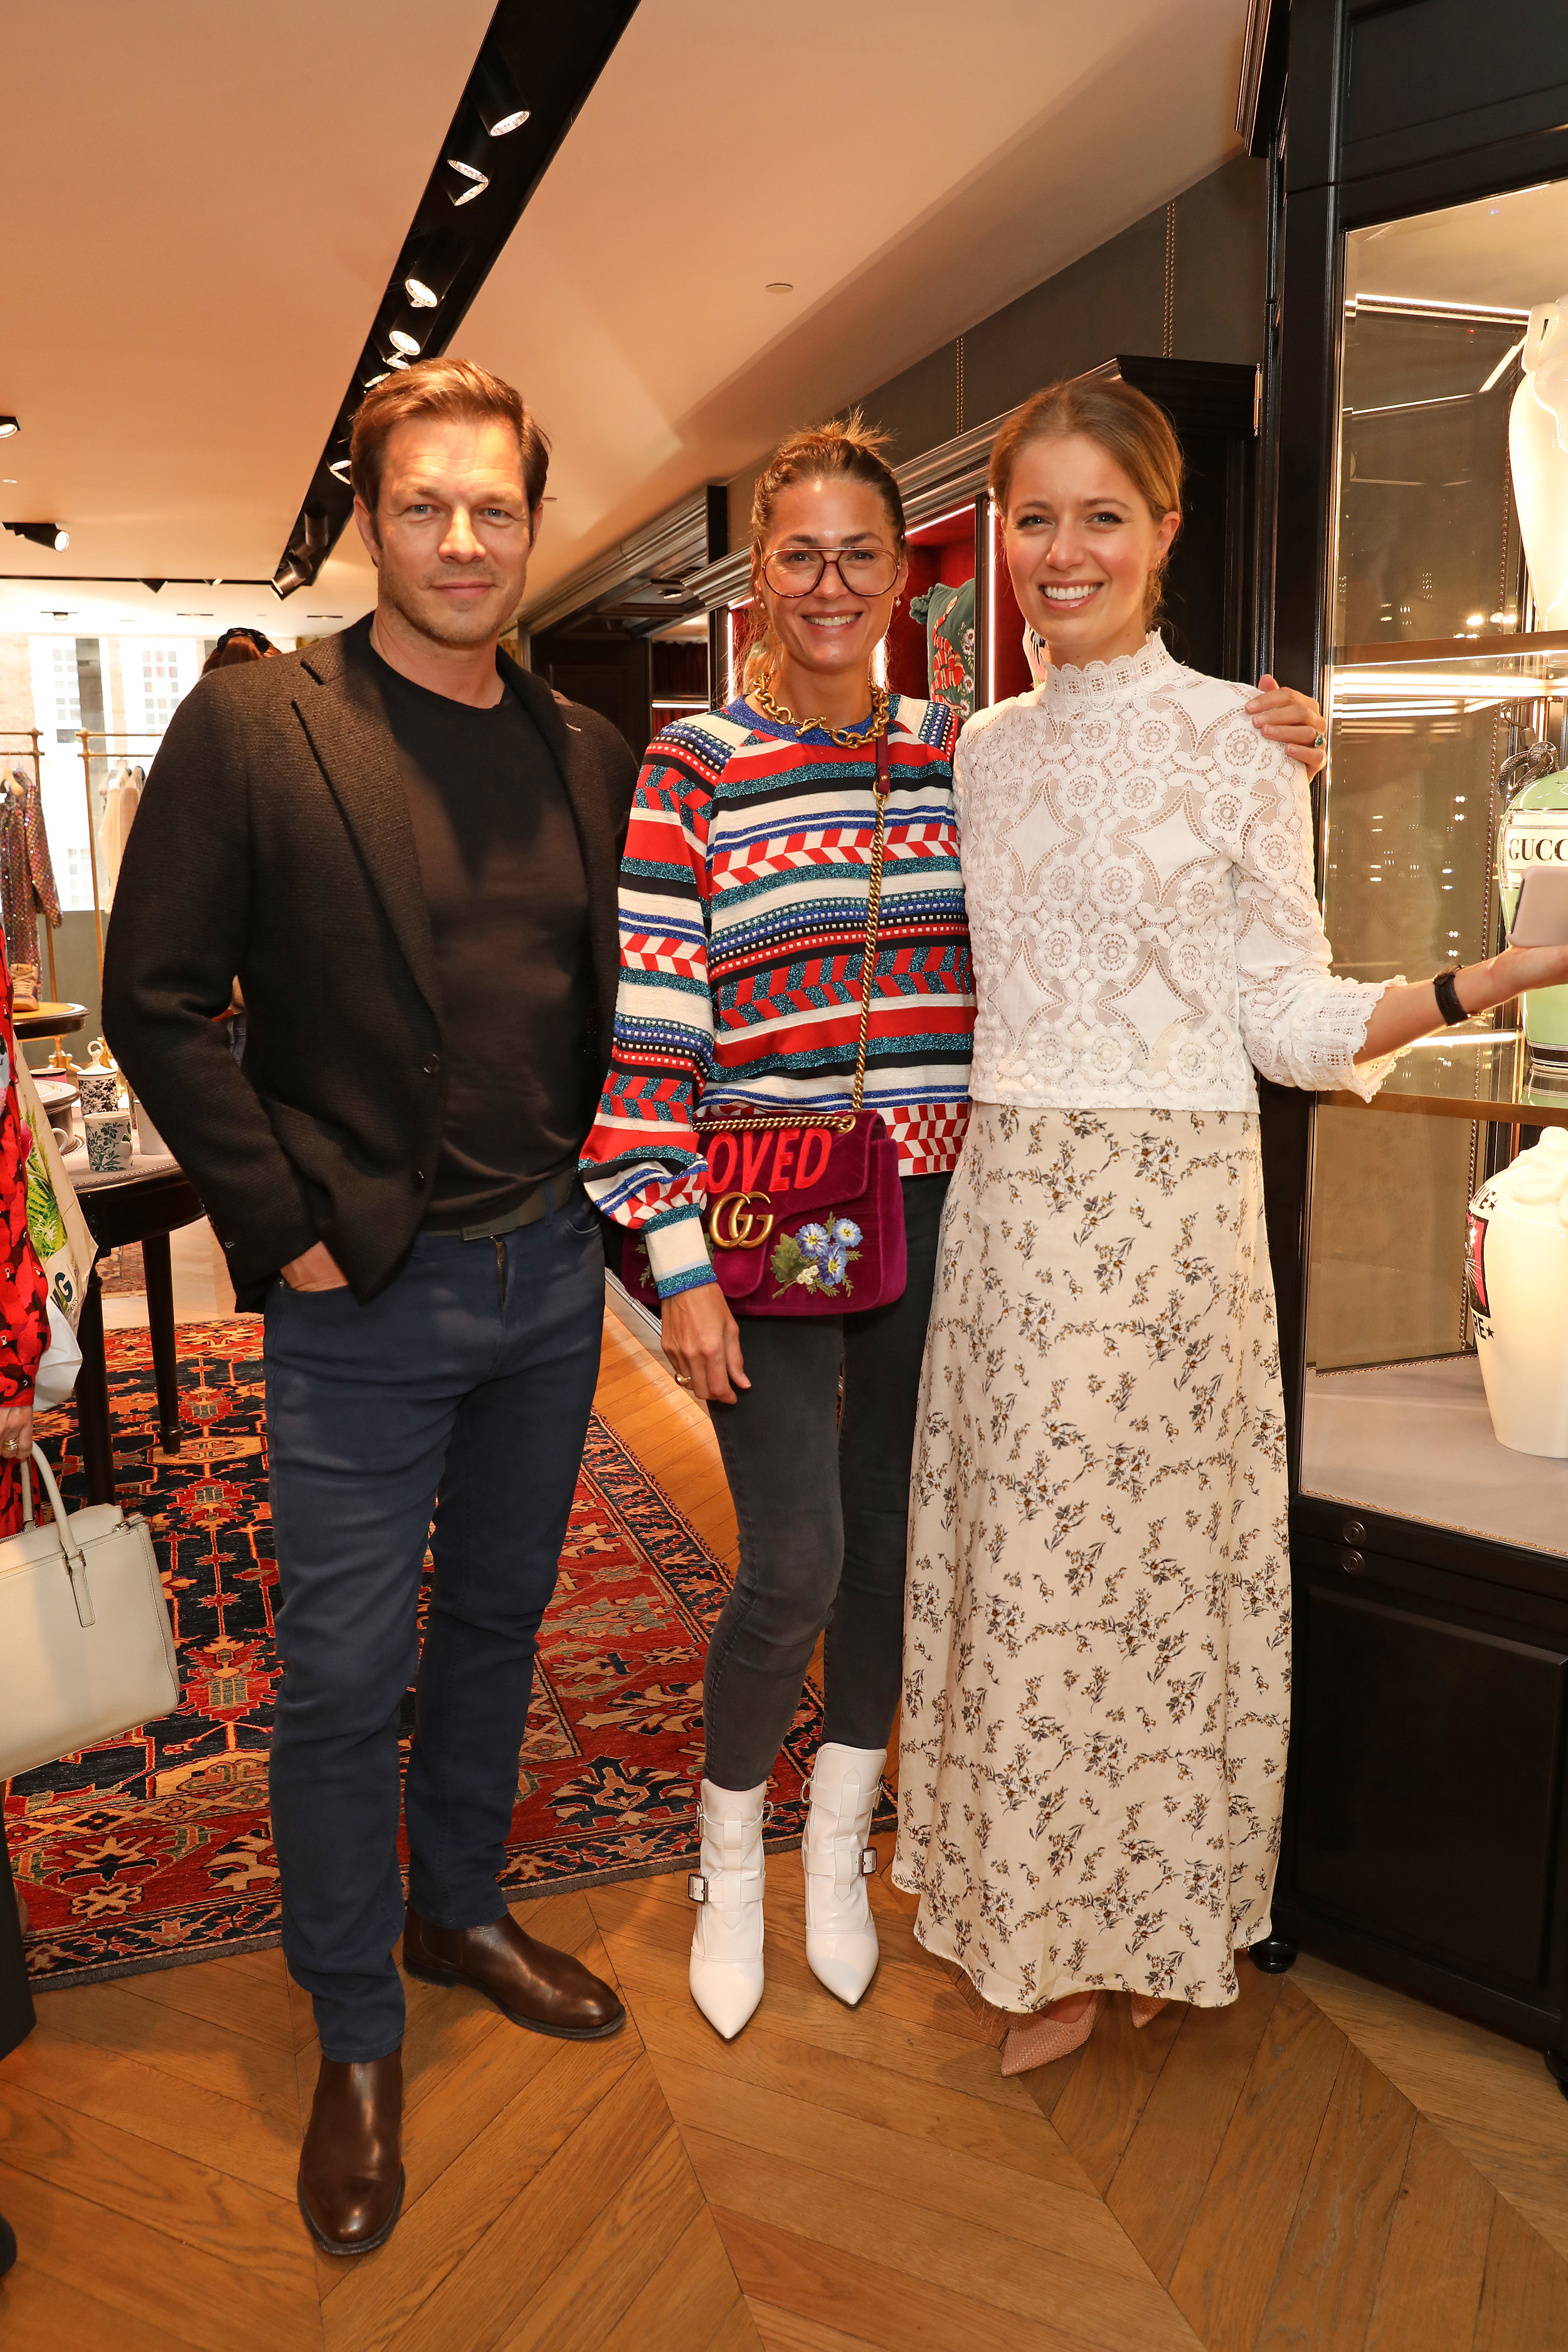 DMB-Launch of the exclusive Lady Garden T-shirt at Breakfast at Gucci014 .JPG